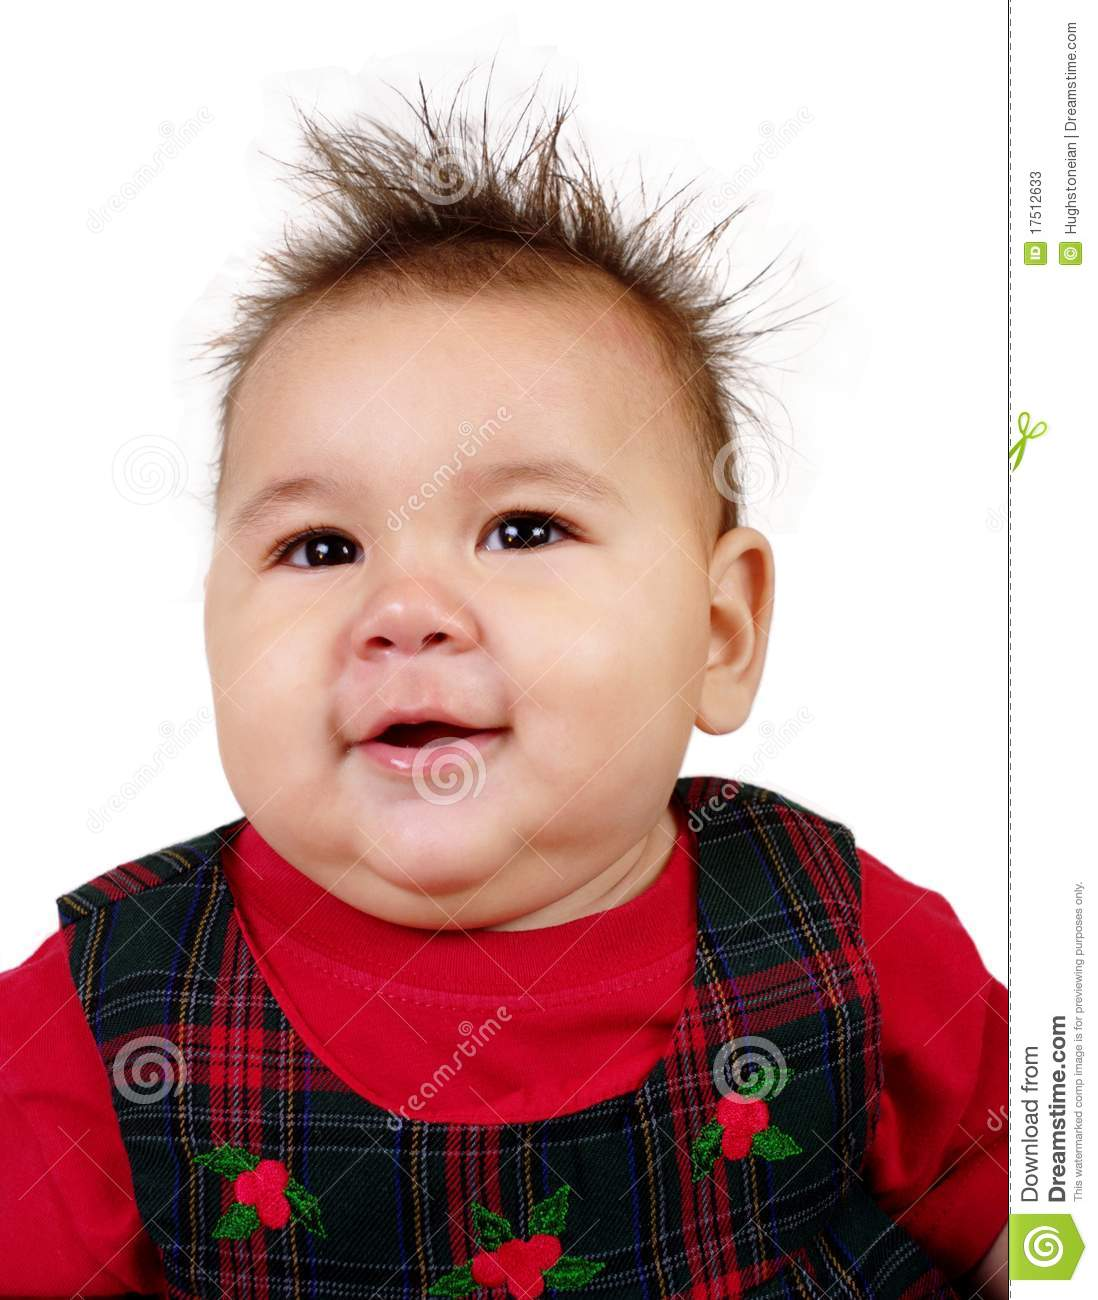 Baby Girl With Funny Spiky Hair Stock Image Image 17512633